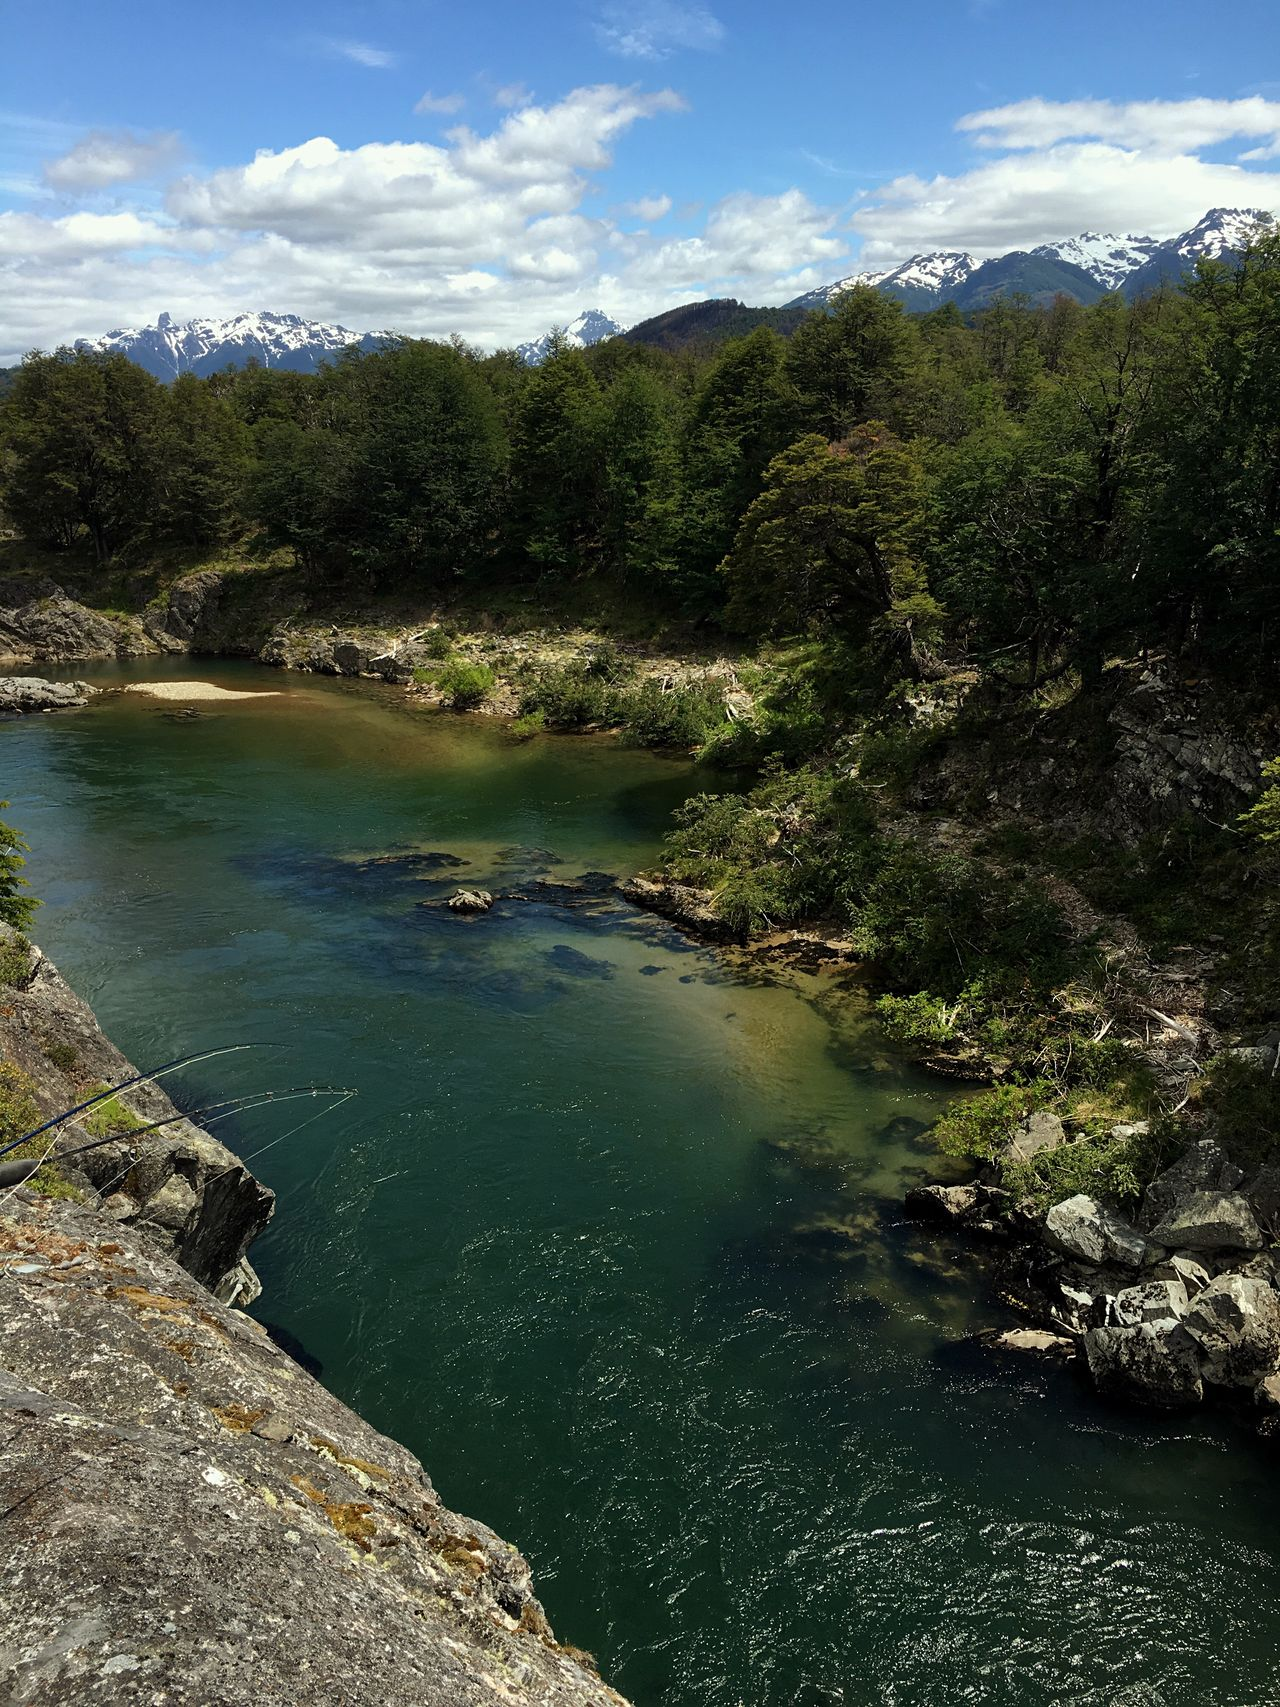 Patagonia Landscape No People Tree Nature Water Beauty In Nature Scenics Outdoors Forest Travel Destinations Sky Green Color Day Patagonia Argentina Patagoniaargentina Río Pico Pesca Flyfishing  Flycasting Pesca Con Mosca Cordillera De Los Andes 4x4 Trucks Verano Naturaleza Argentina Photography